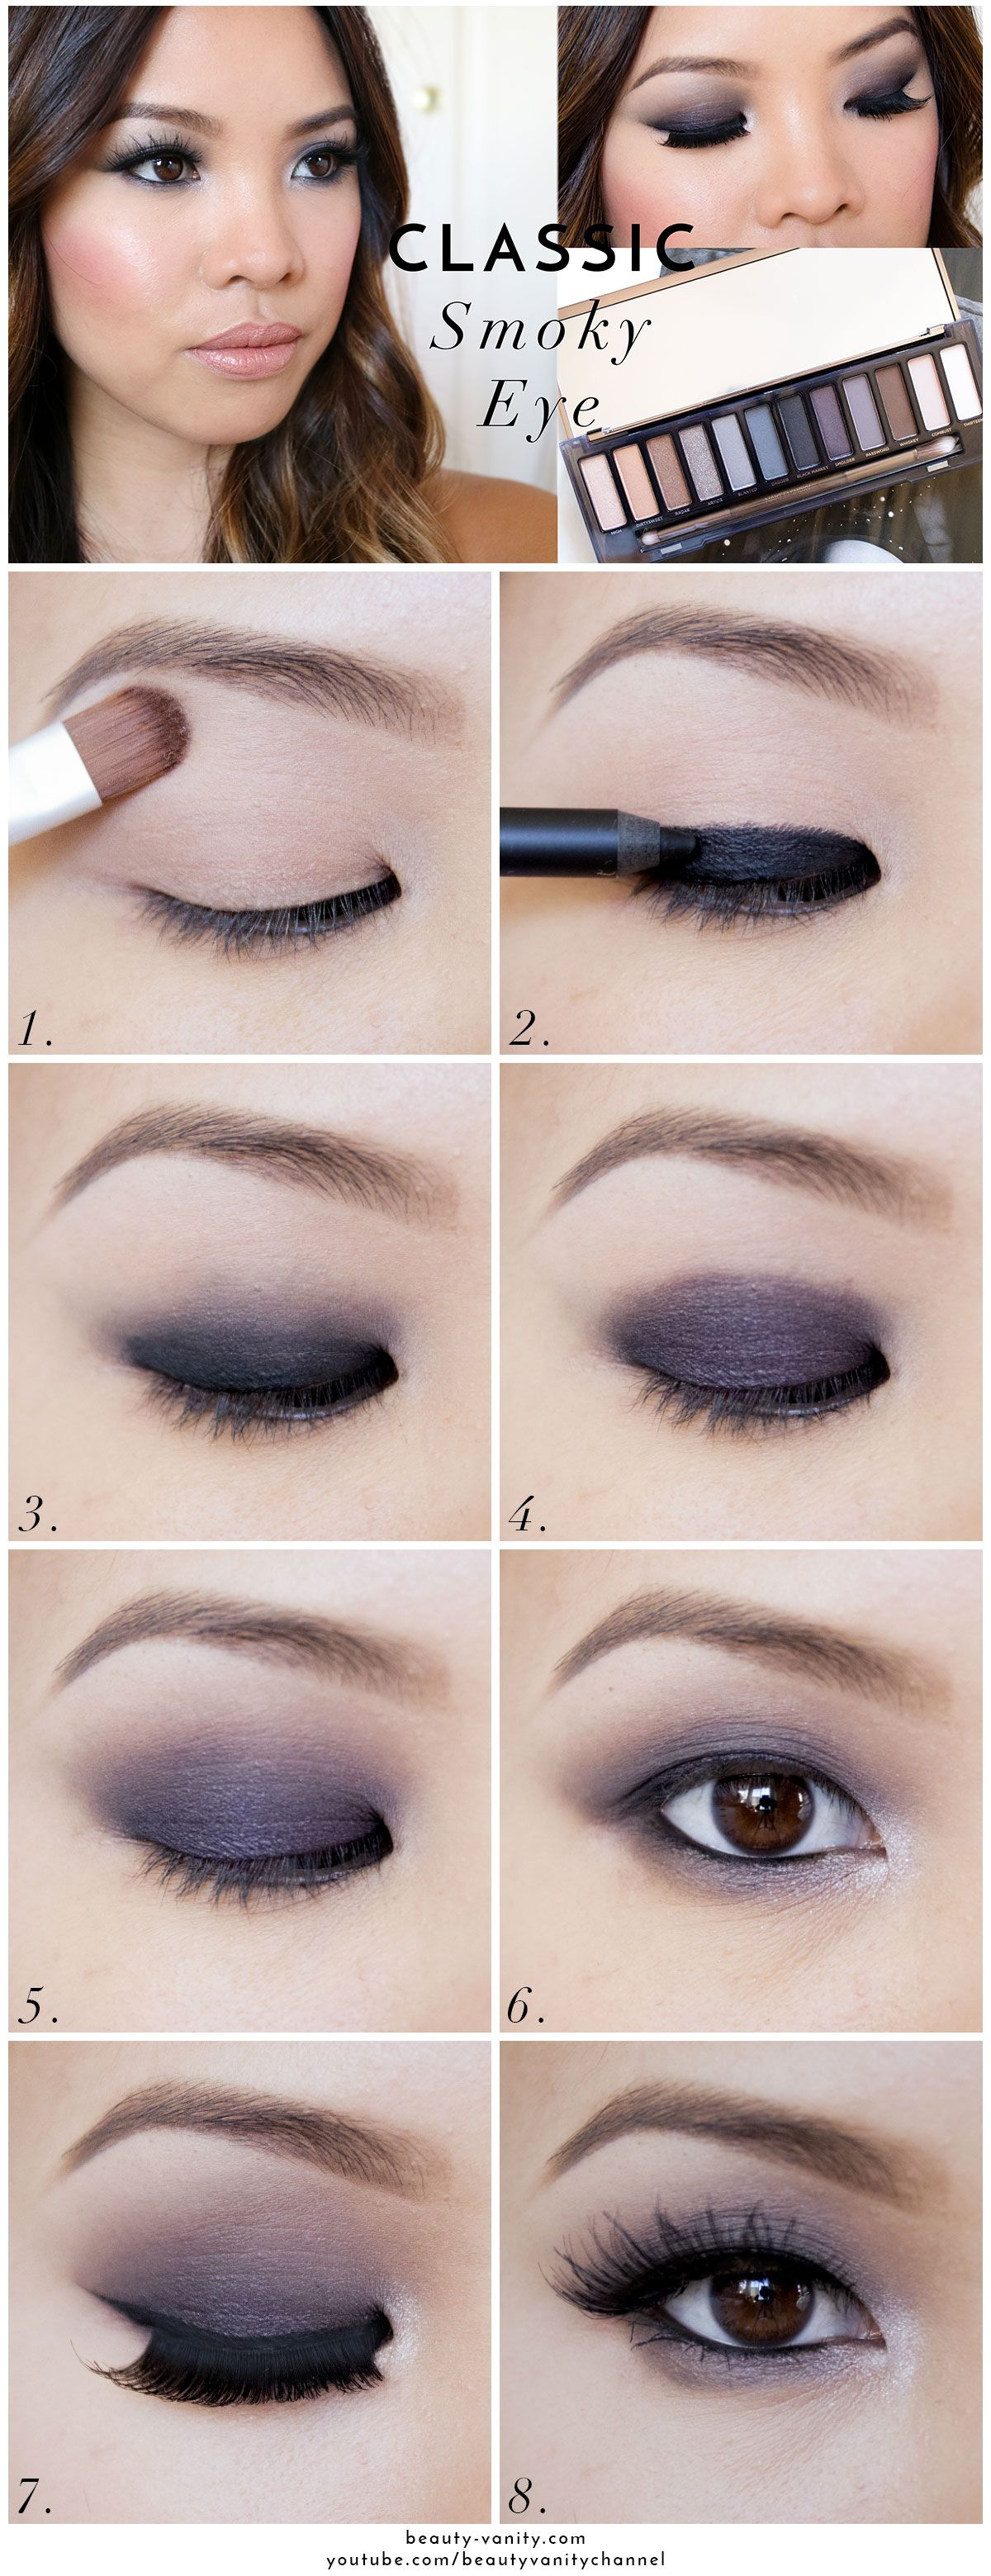 The Beauty Vanity Classic Smoky Eye Makeup for Asian